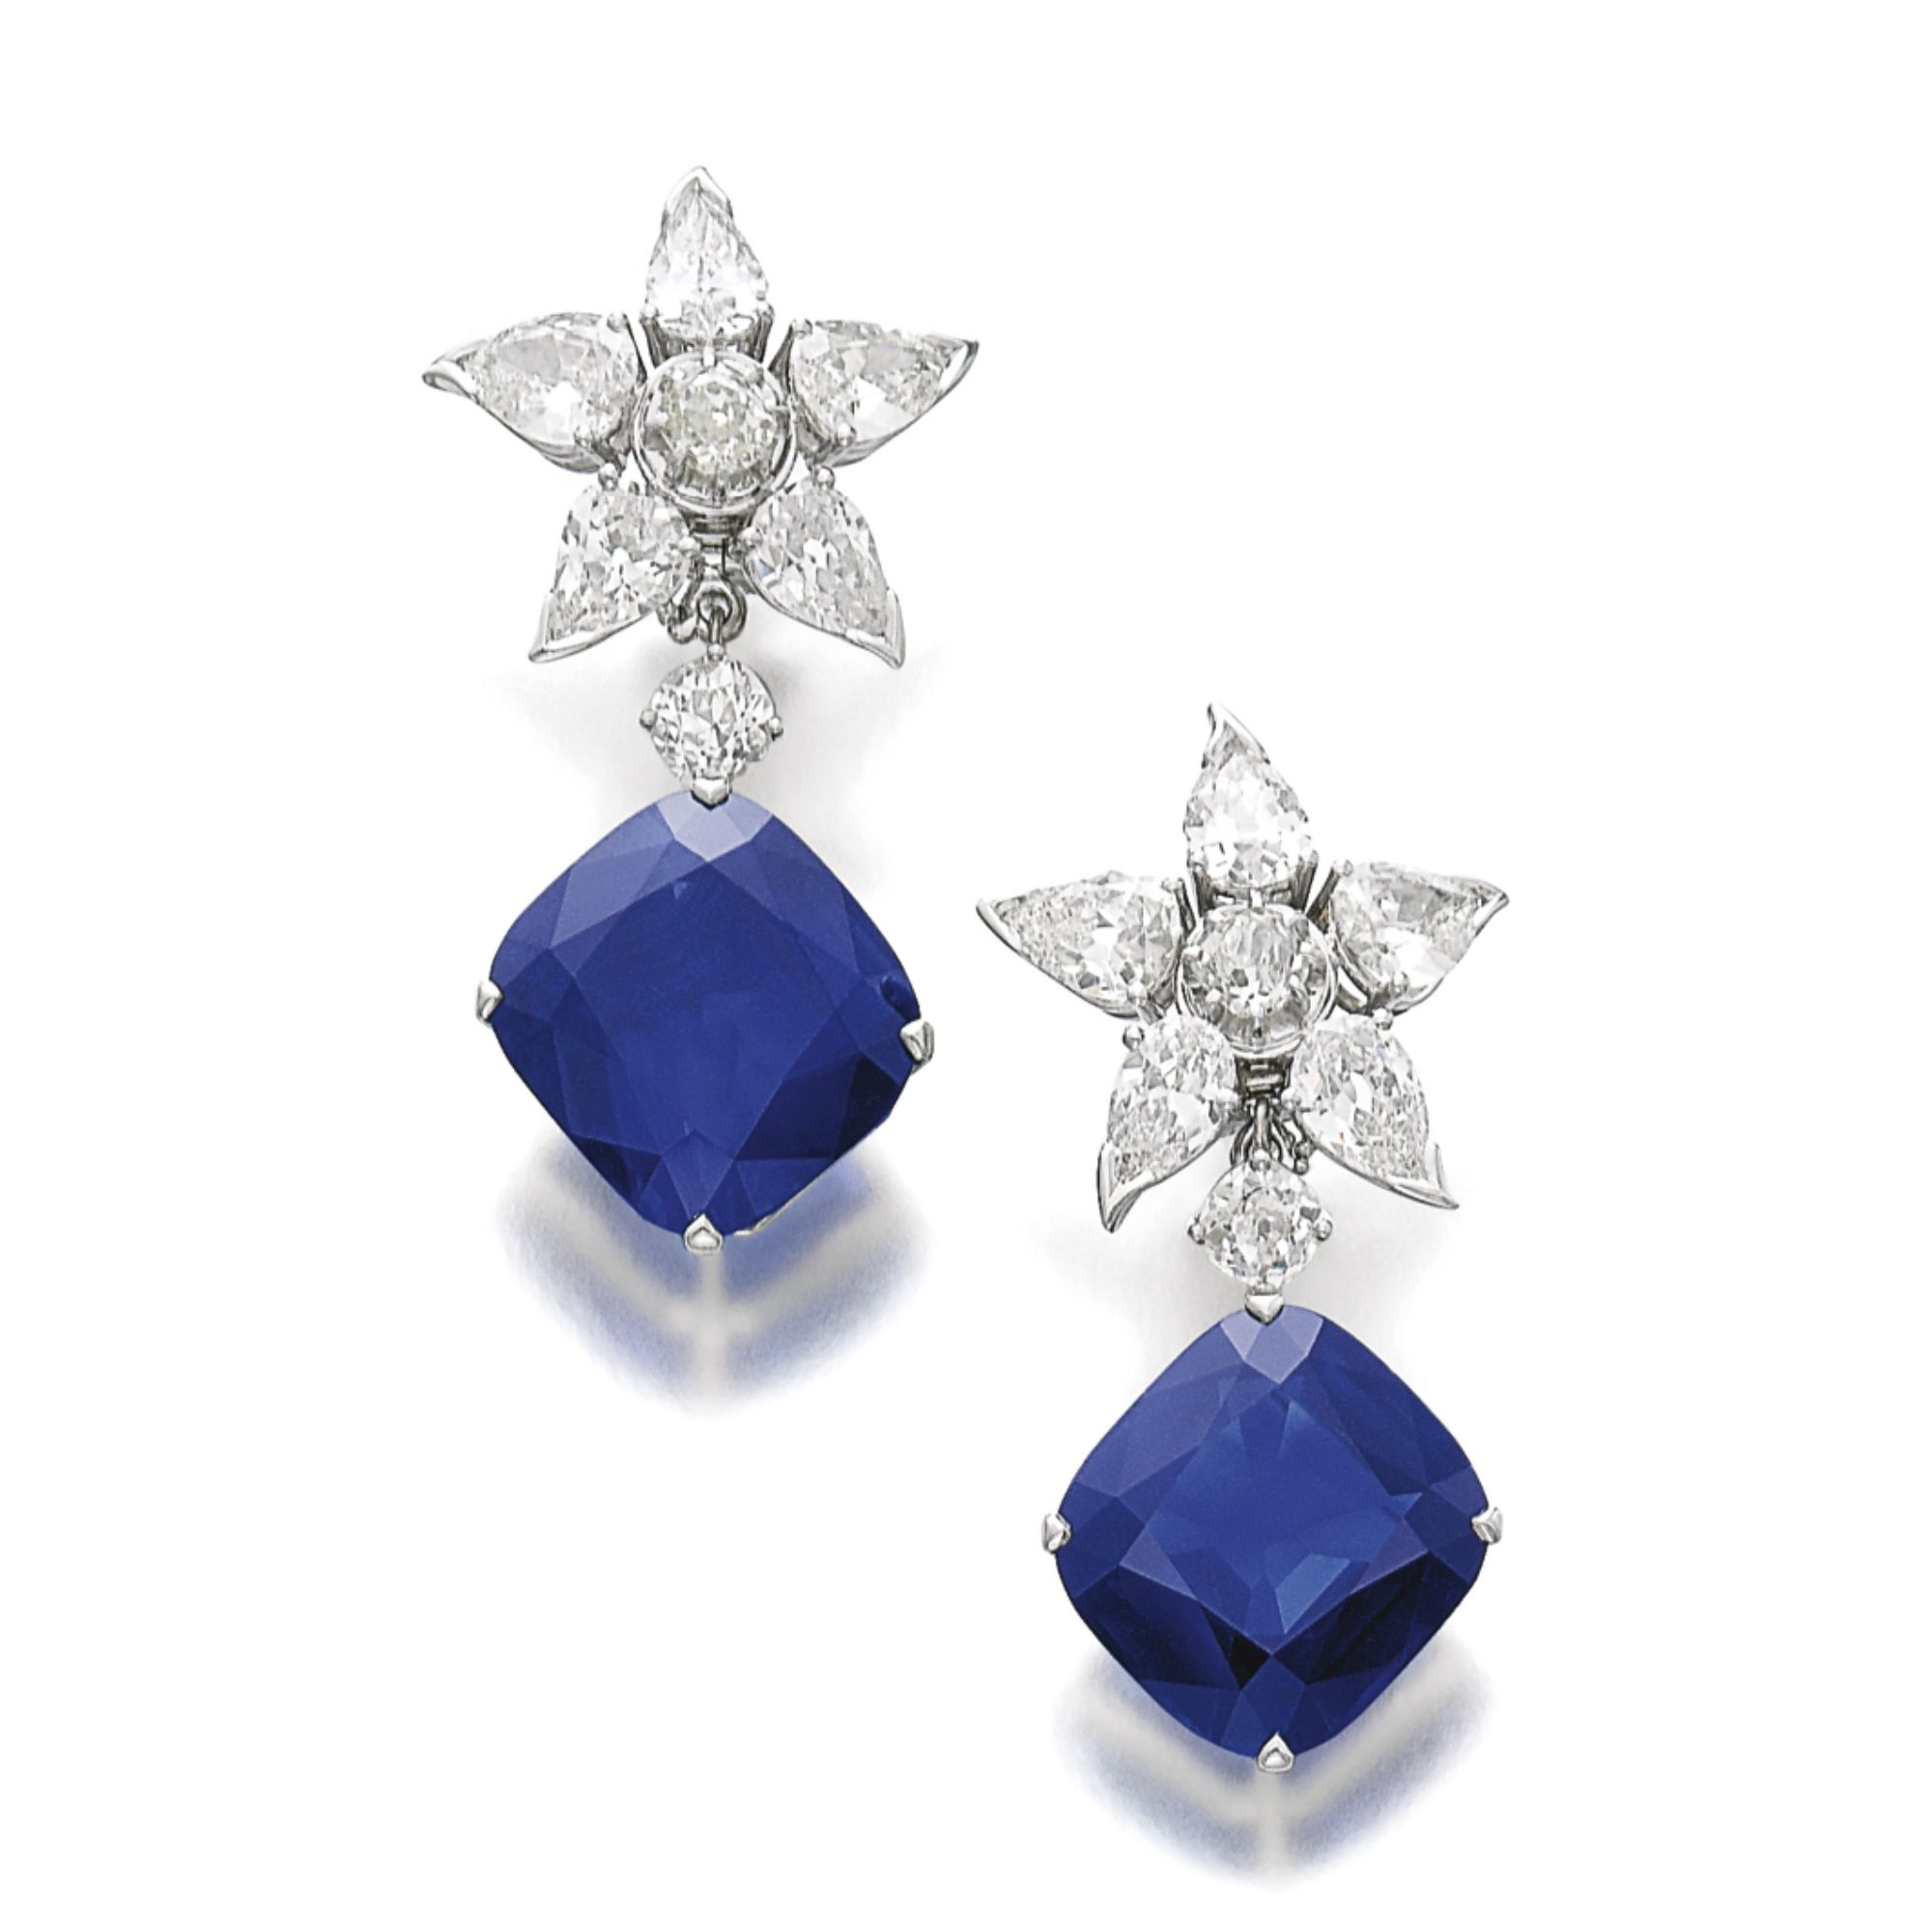 The Richelieu Sapphires, a pair of rare and magnificent sapphire and diamond earrings Each set with a cushion-shaped sapphire weighing 26.66 and 20.88 carats respectively, suspended from a star surmount set with a cushion- and pear-shaped diamonds, post and hinged back fittings.